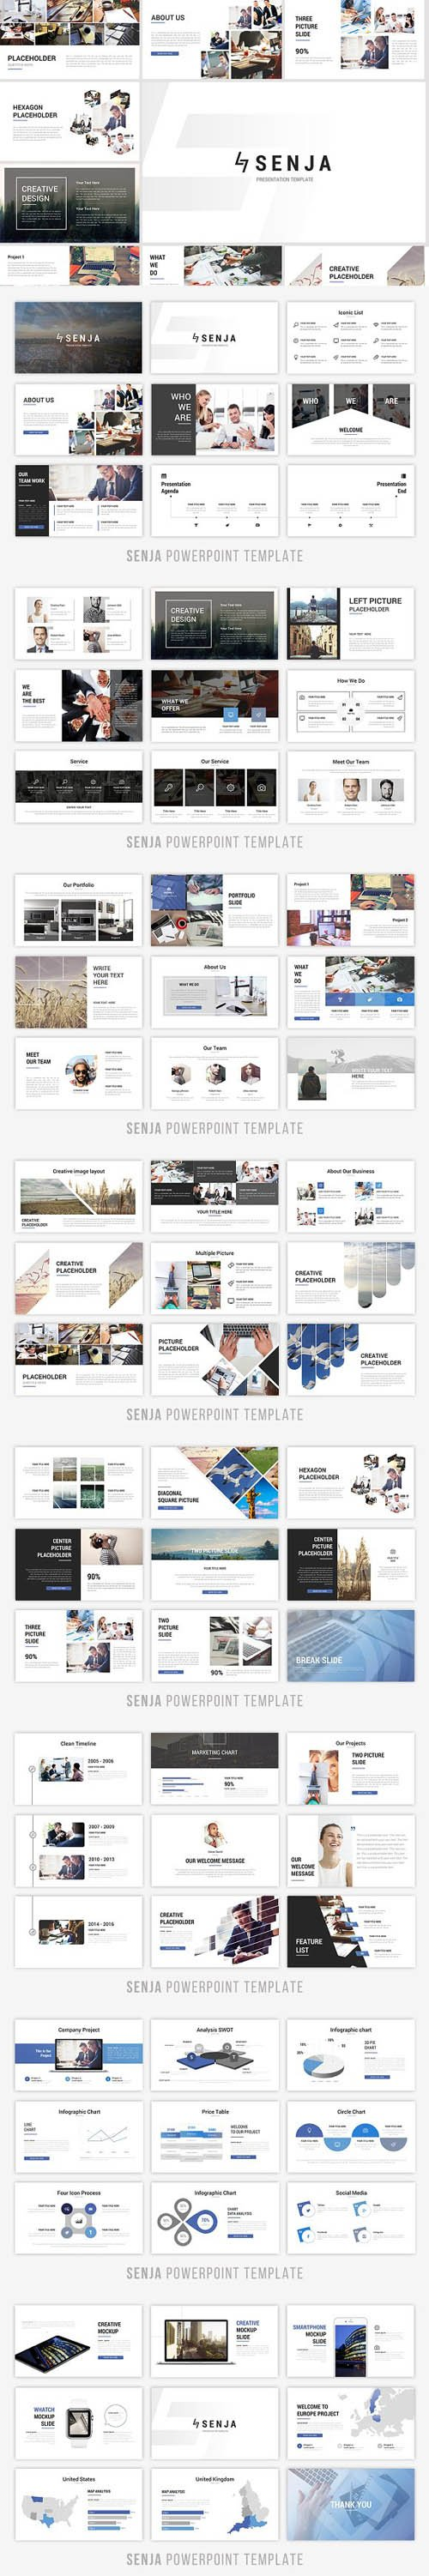 Senja Powerpoint Template 1339165